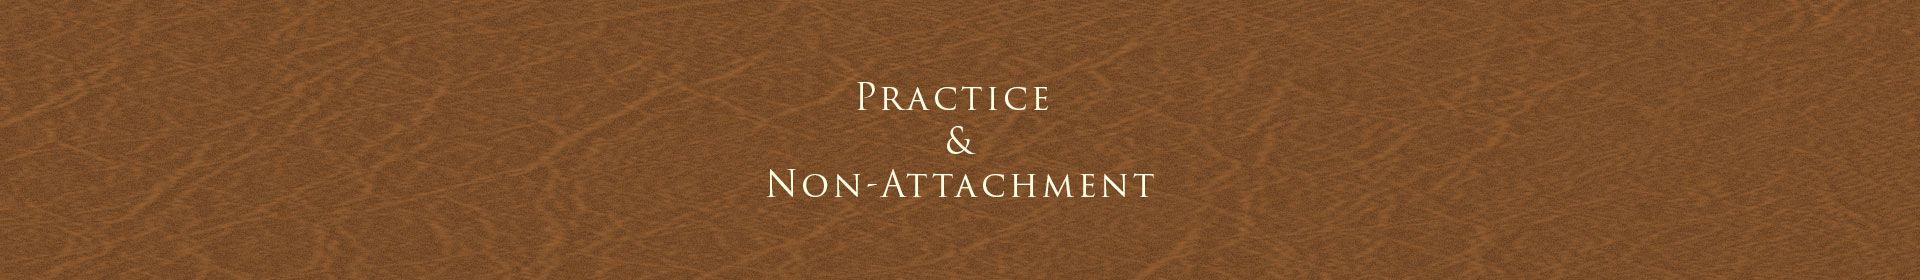 Practice and Non-Attachment